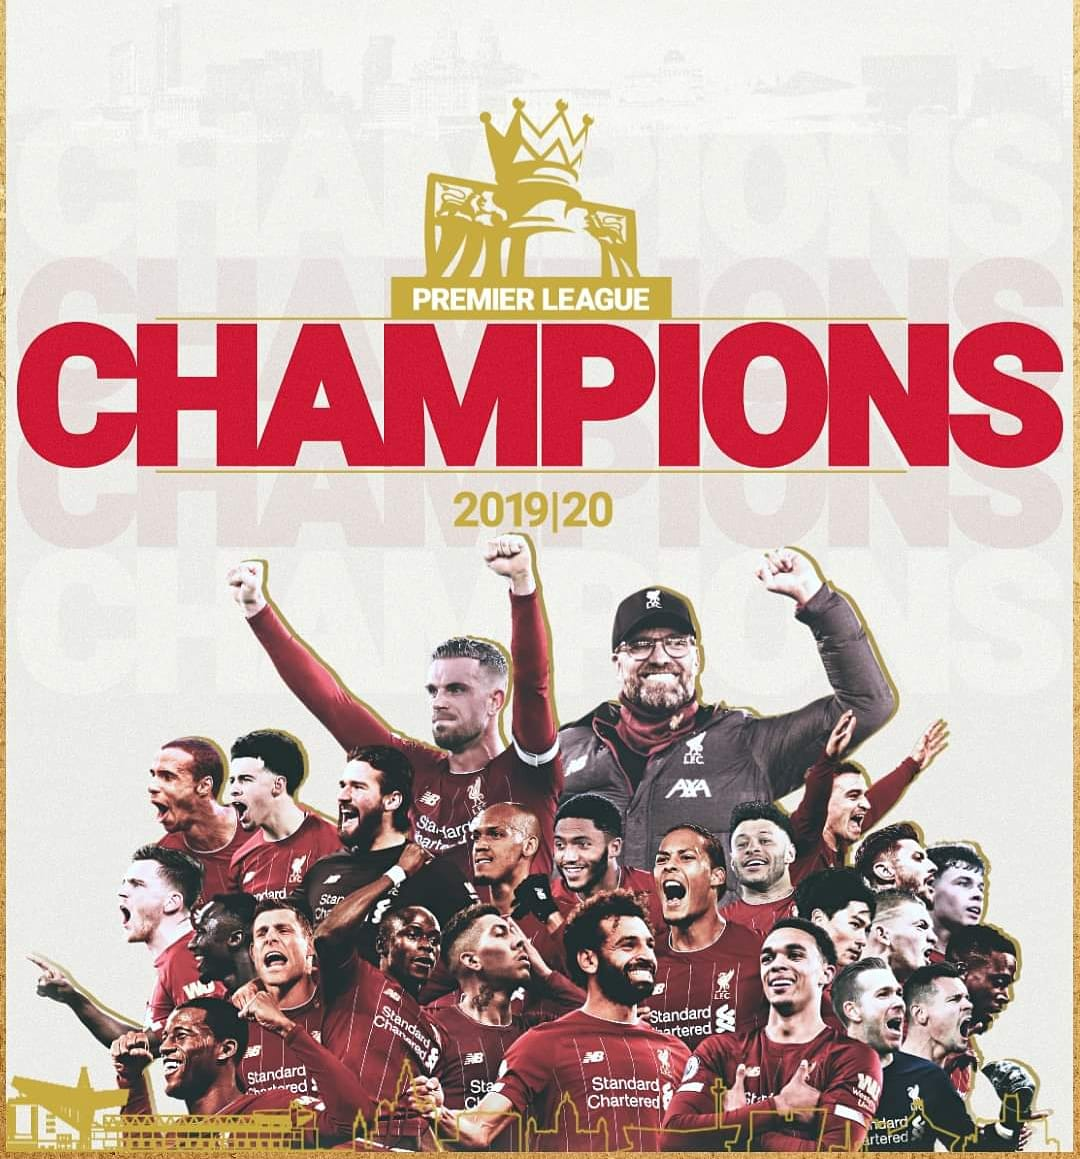 - Congratulations to all #LFC fans out there, you deserved this! #PremierLeagueChampions